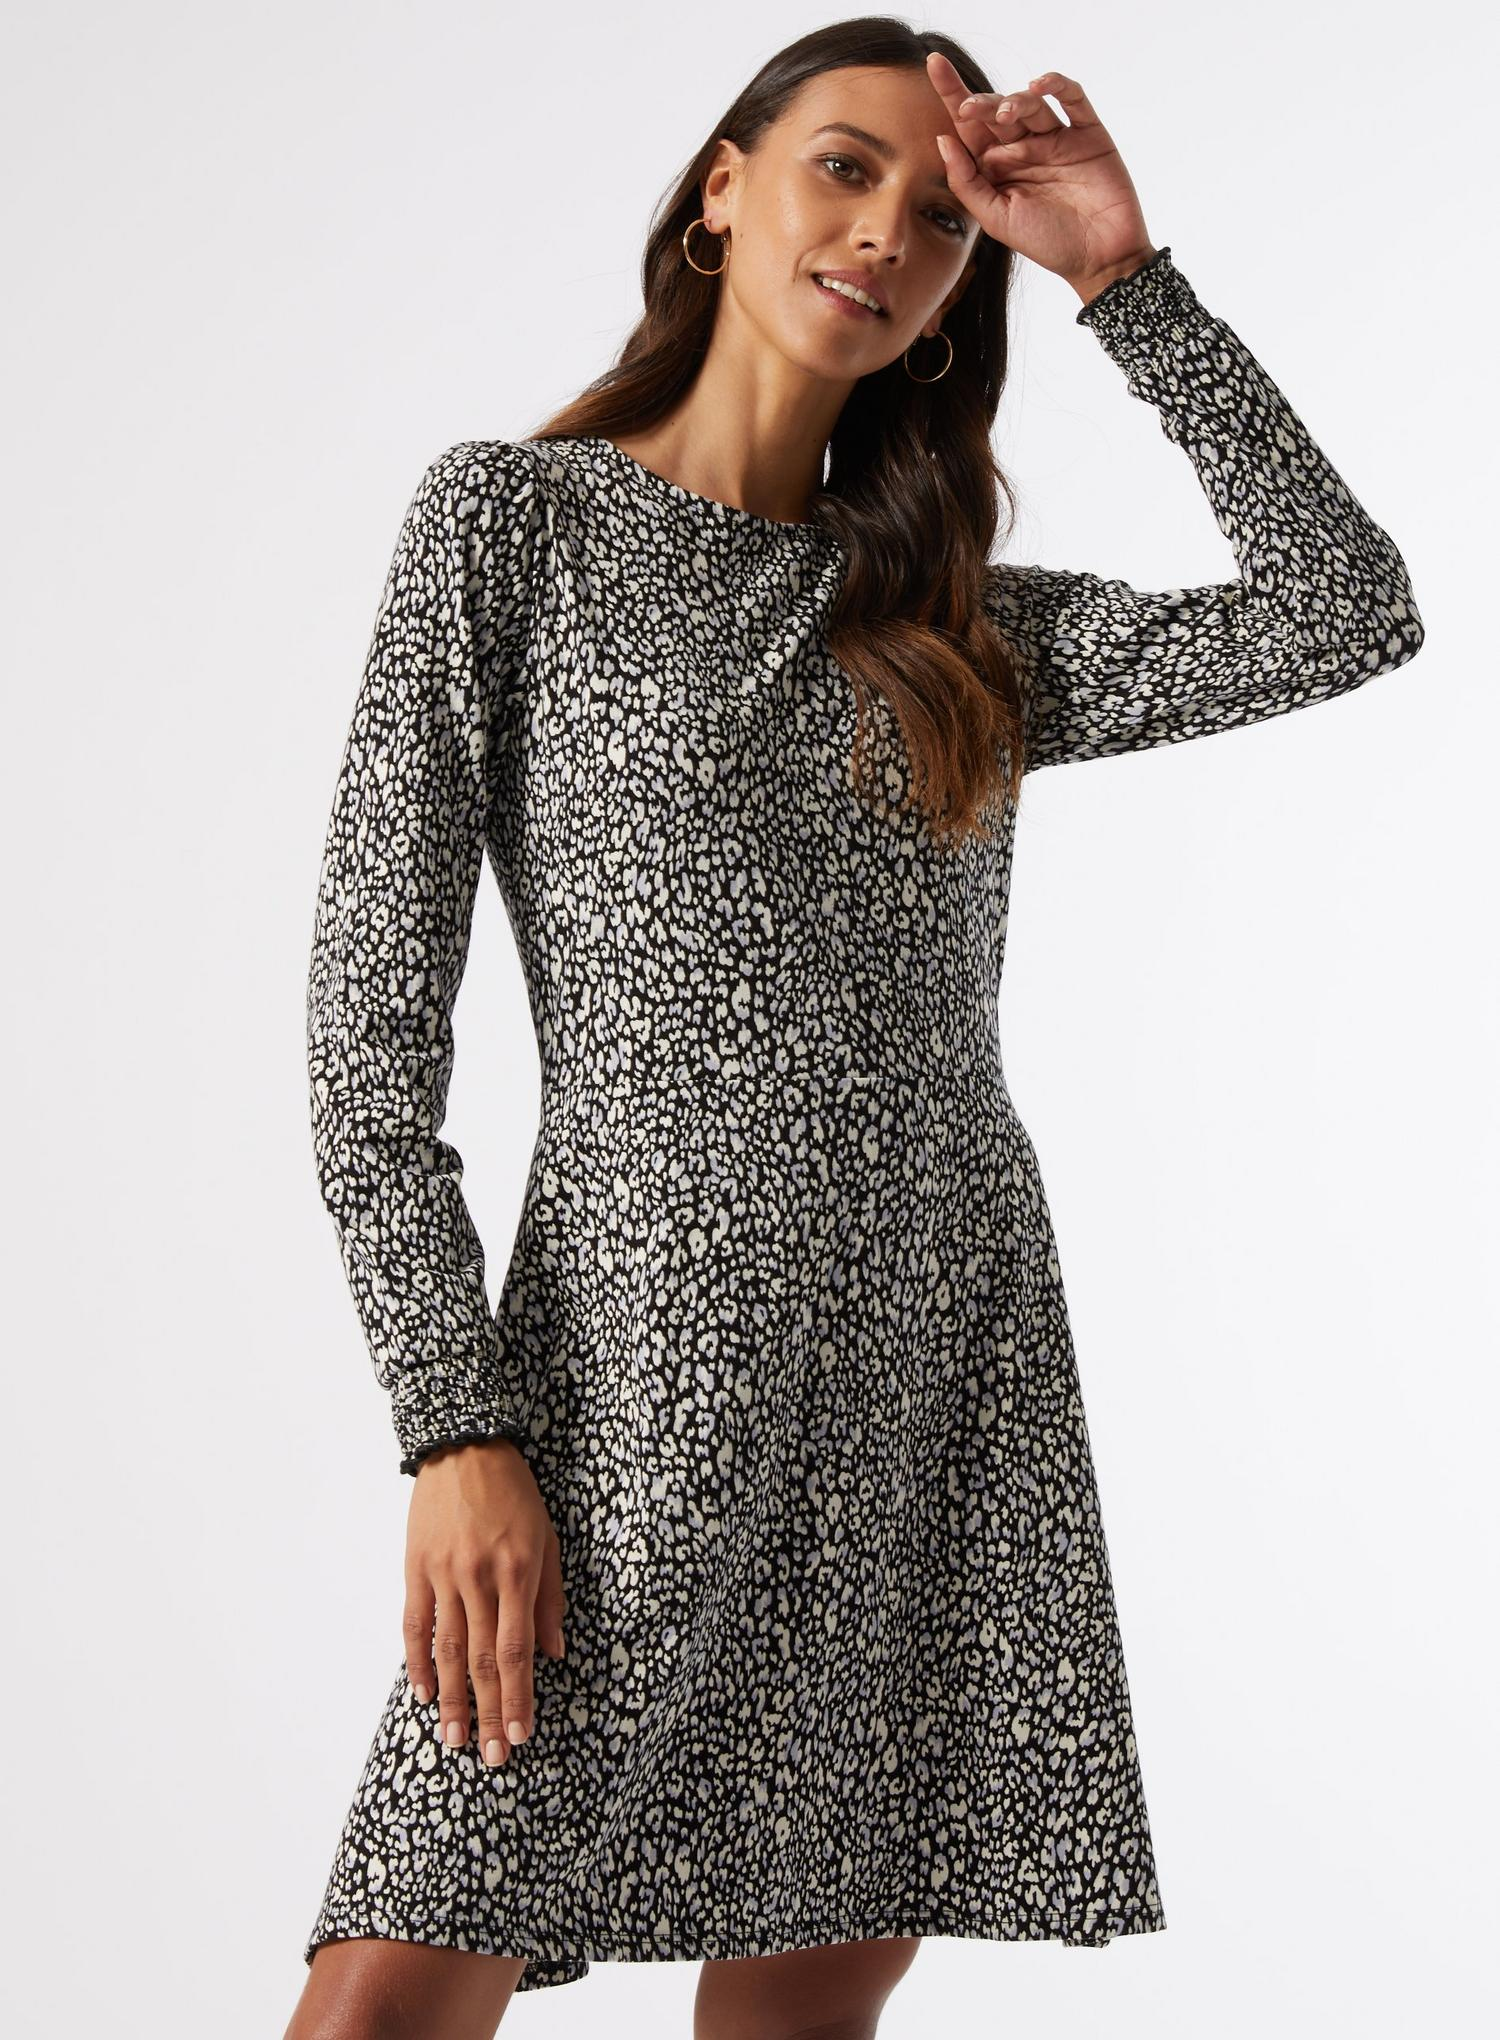 106 Blue Leopard  Organic Mini Fit And Flare Dress image number 2